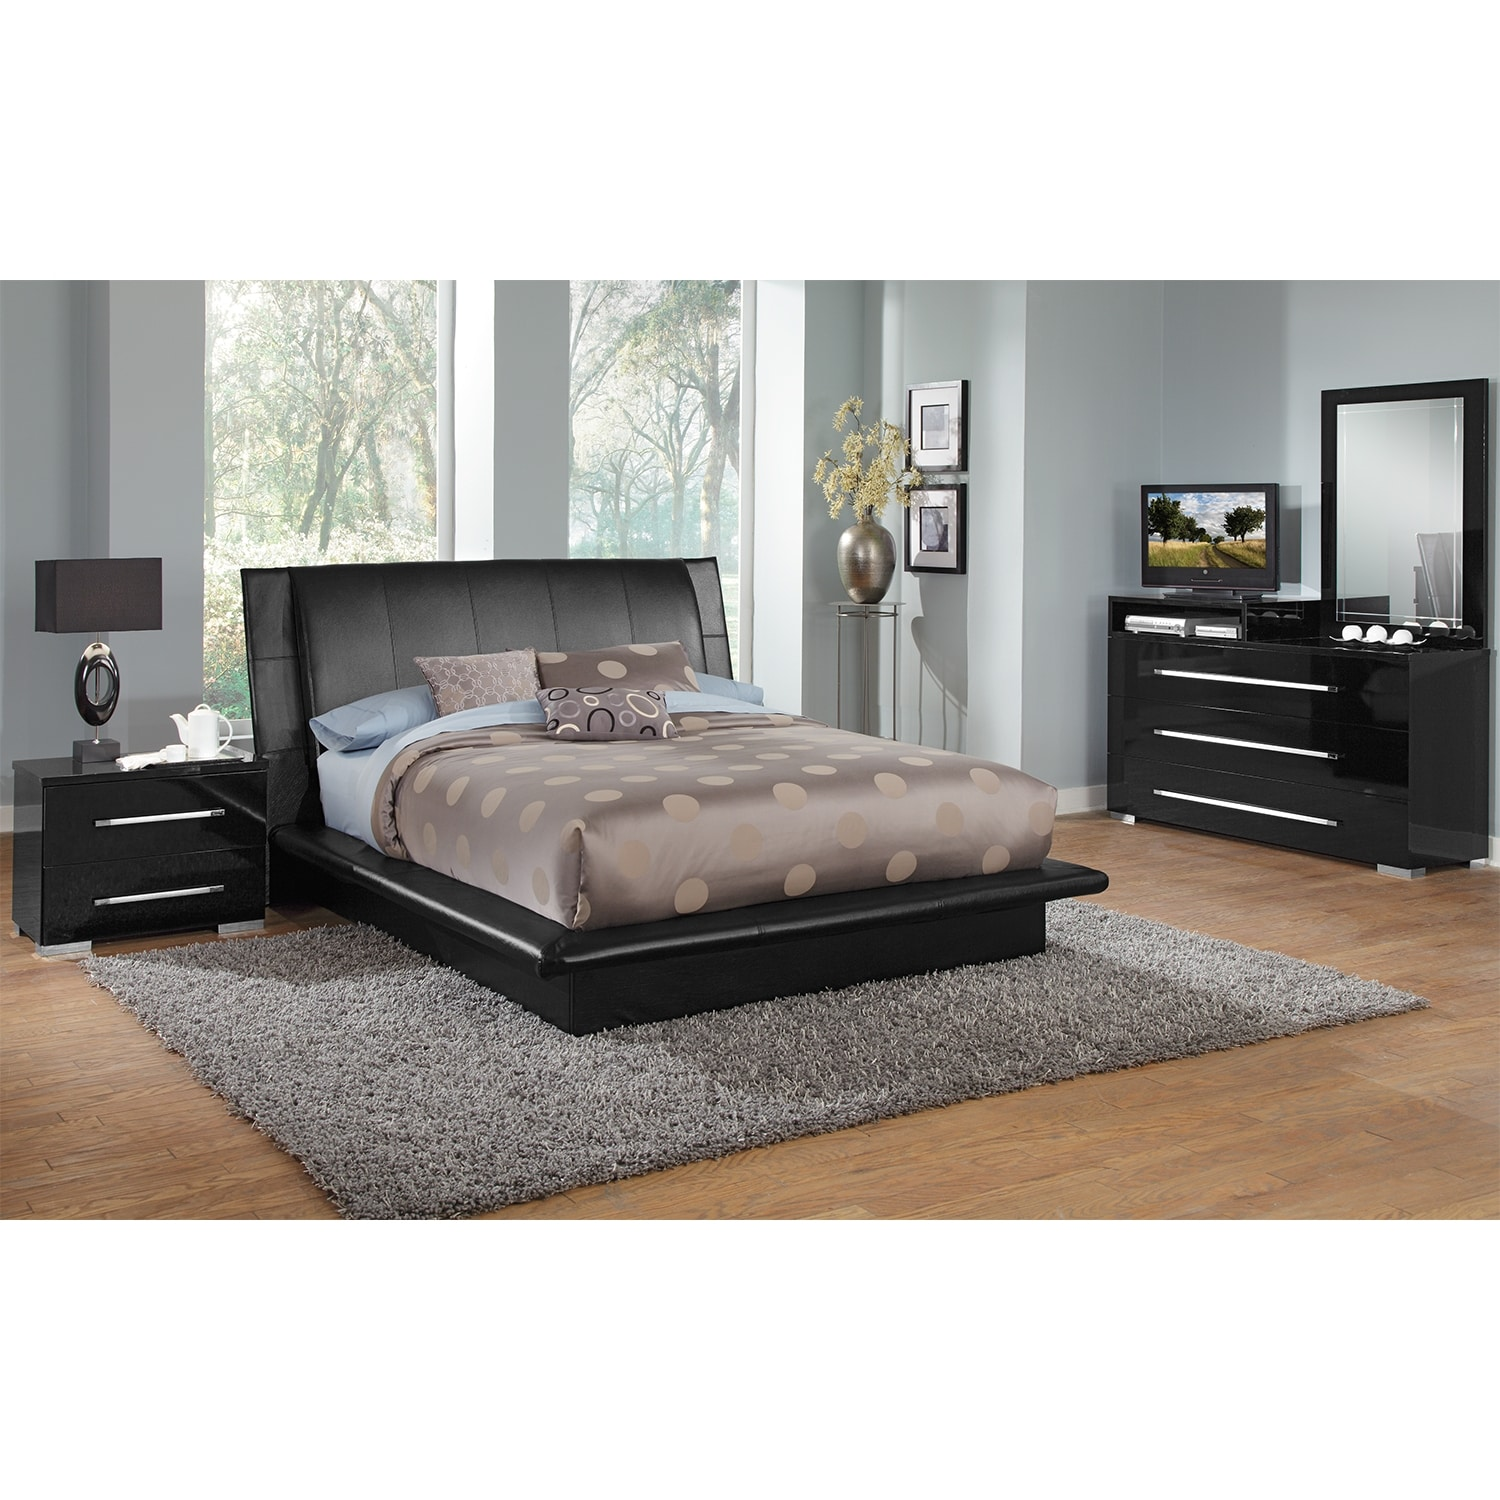 Dimora 6 Piece Queen Upholstered Bedroom Set With Media Dresser Black Ame